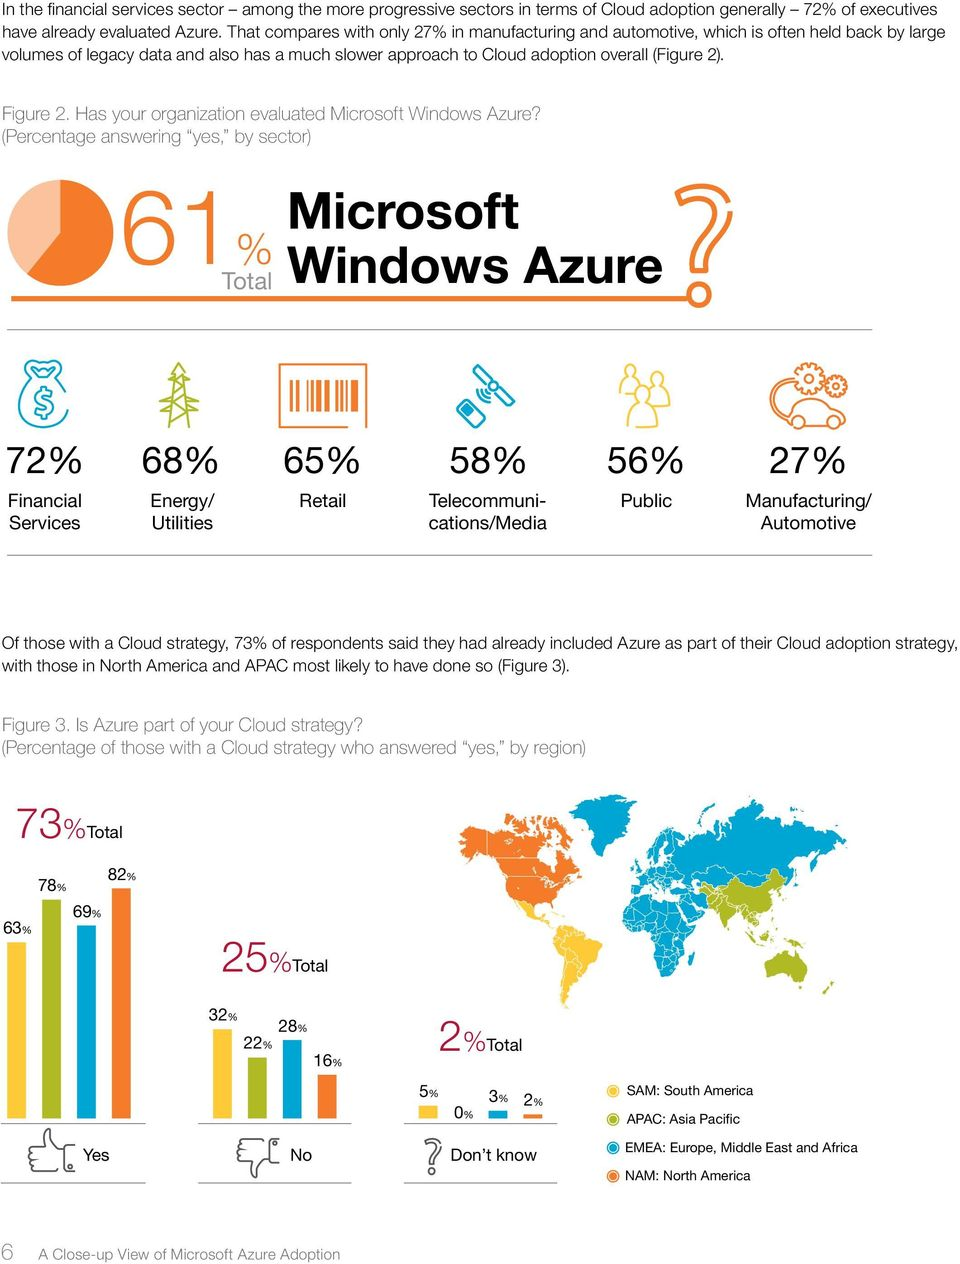 Figure 2. Has your organization evaluated Microsoft Windows Azure?